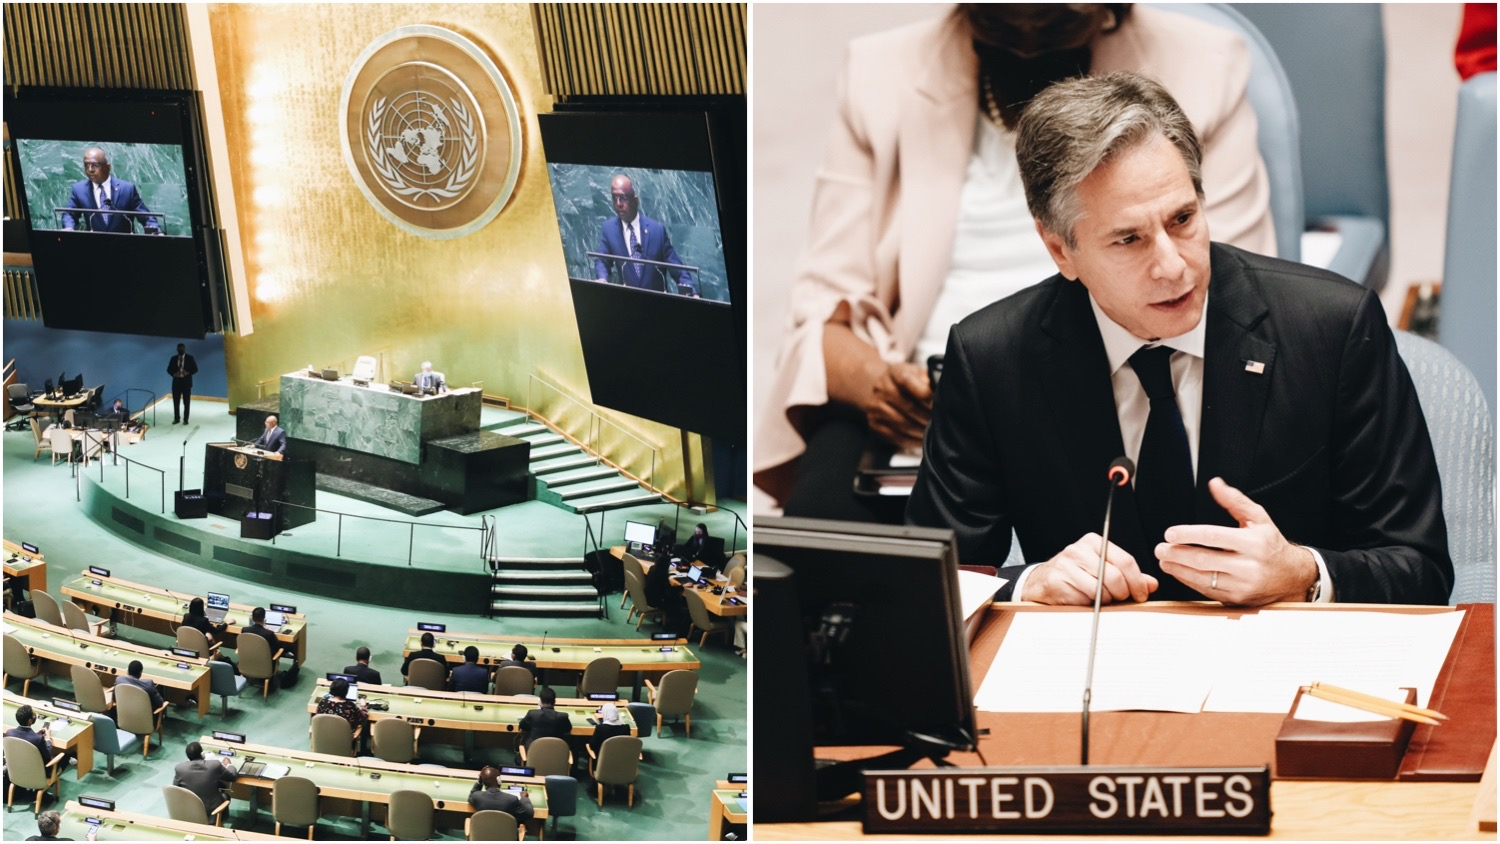 UN General Assembly 2021: Will Leaders' Actions Match Their Words?